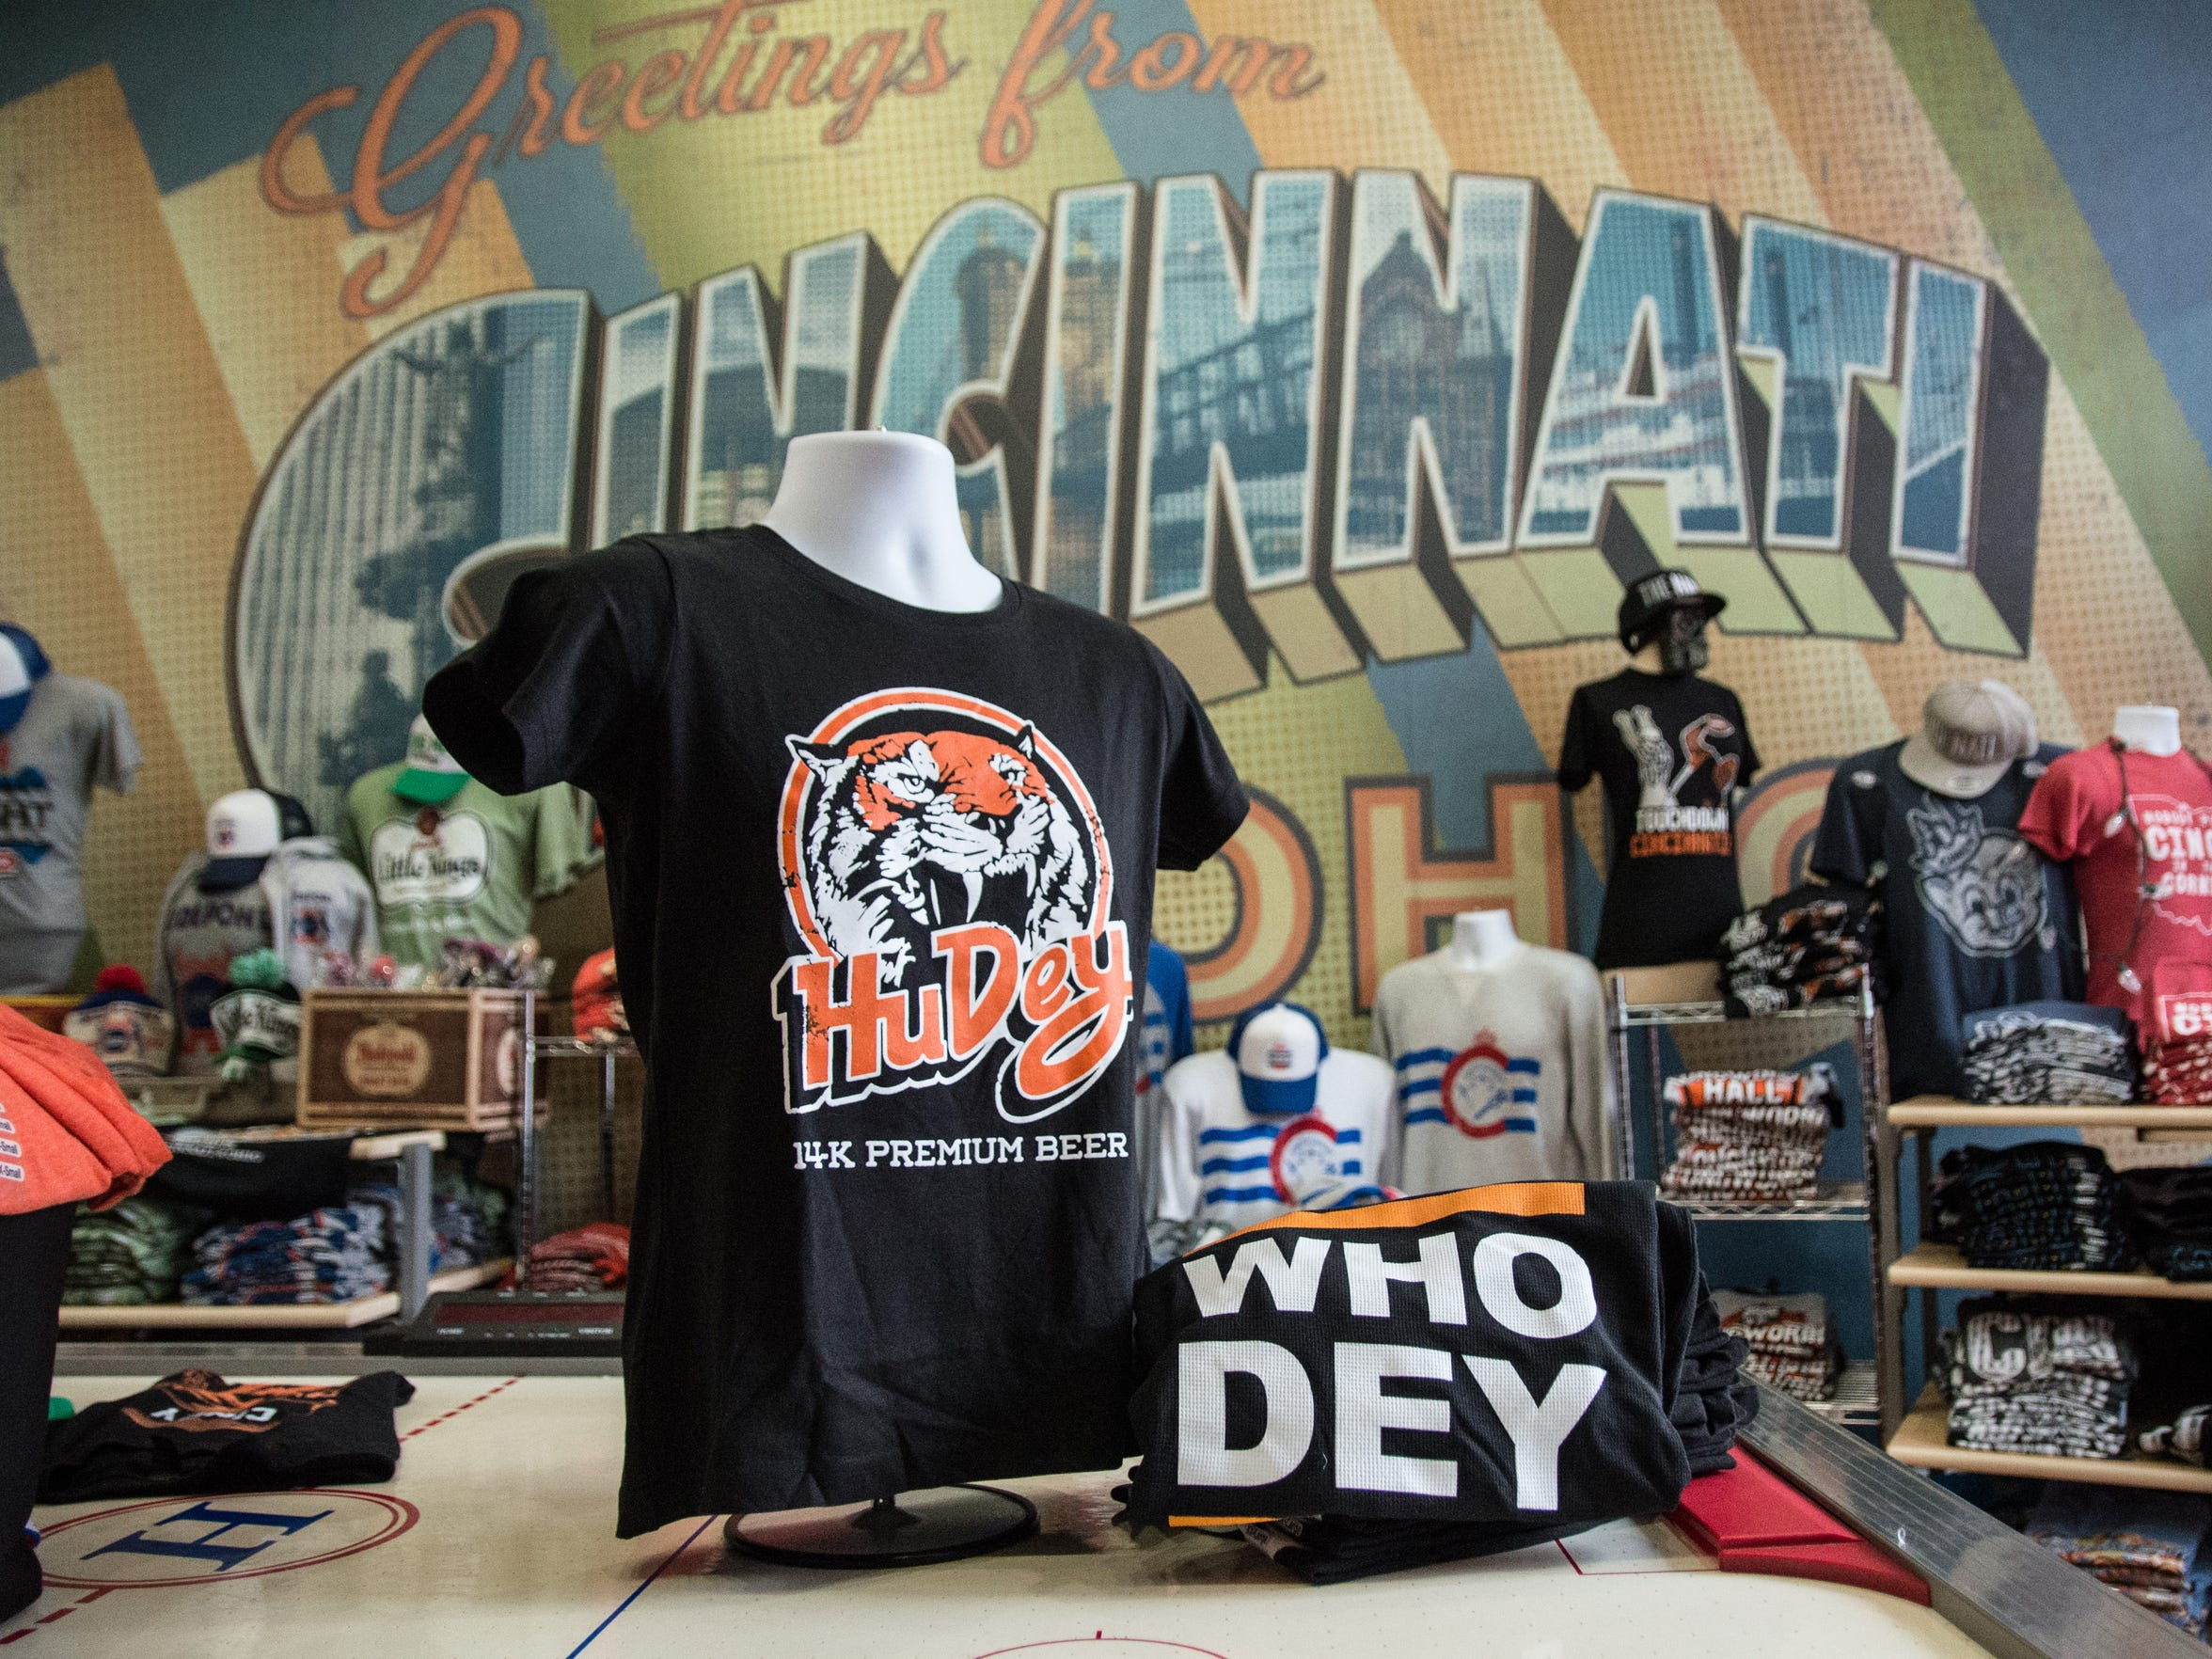 CincyShirts, located on Main Street downtown Cincinnati, features Who Dey shirts for Bengals fans to wear. Bengals are so big this year that merchandise was targeted in a recent break in at the shop.